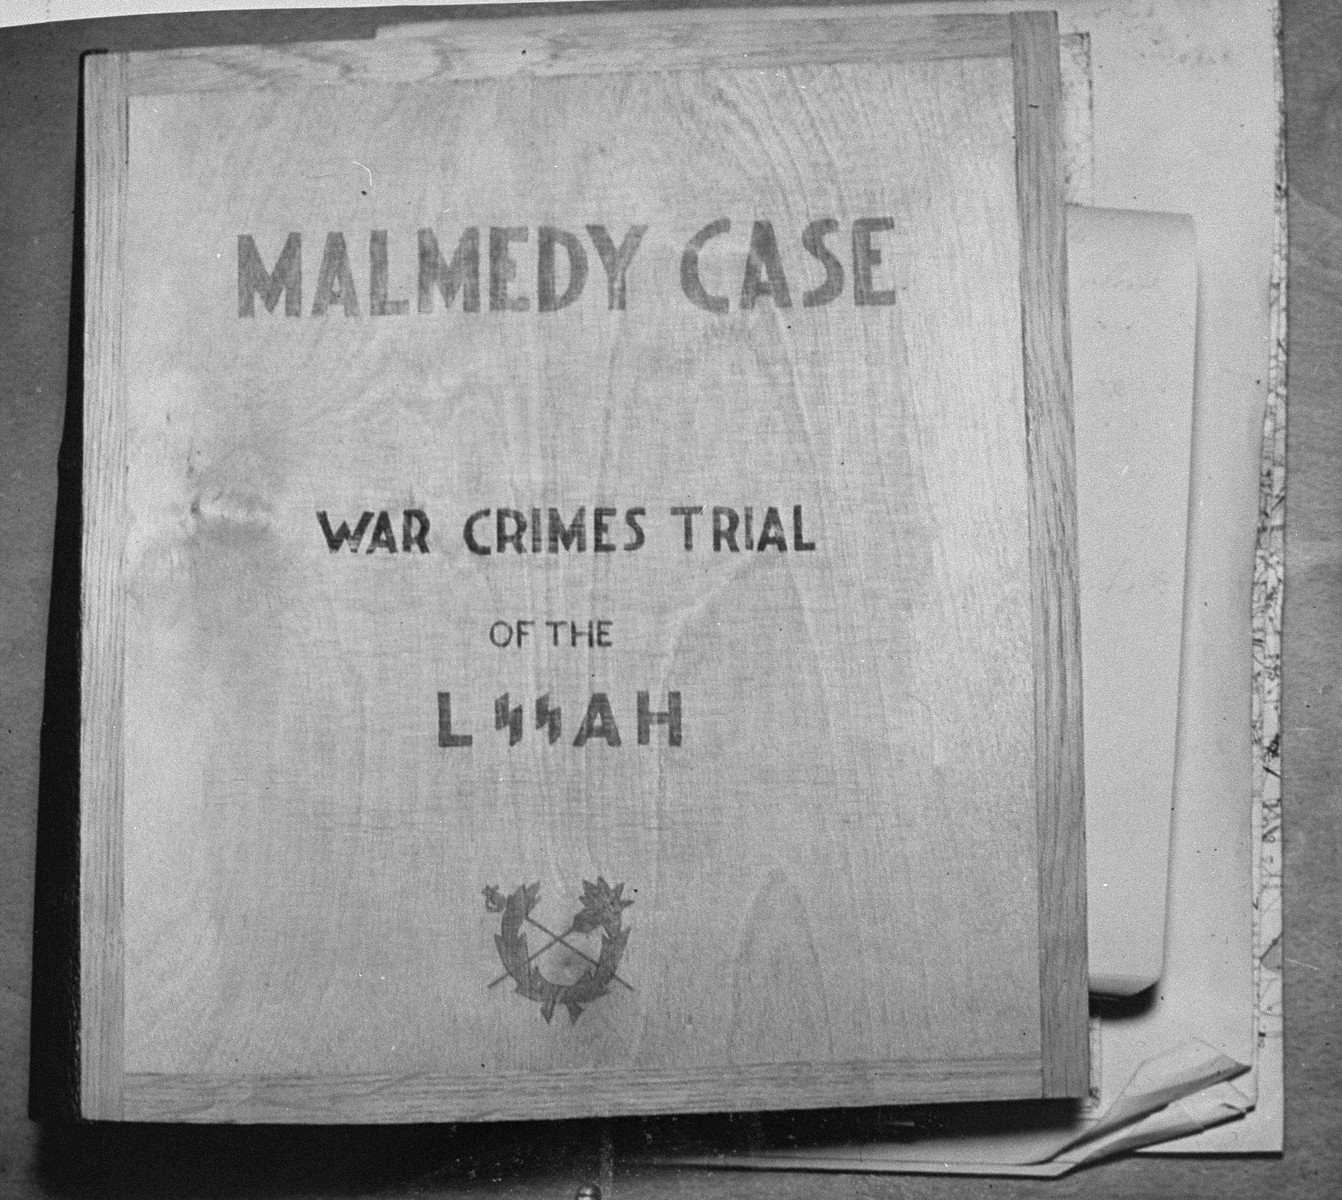 The book containing the indictments and charges against the defendants in the trial of 74 SS men charged with perpetrating the Malmedy atrocity.